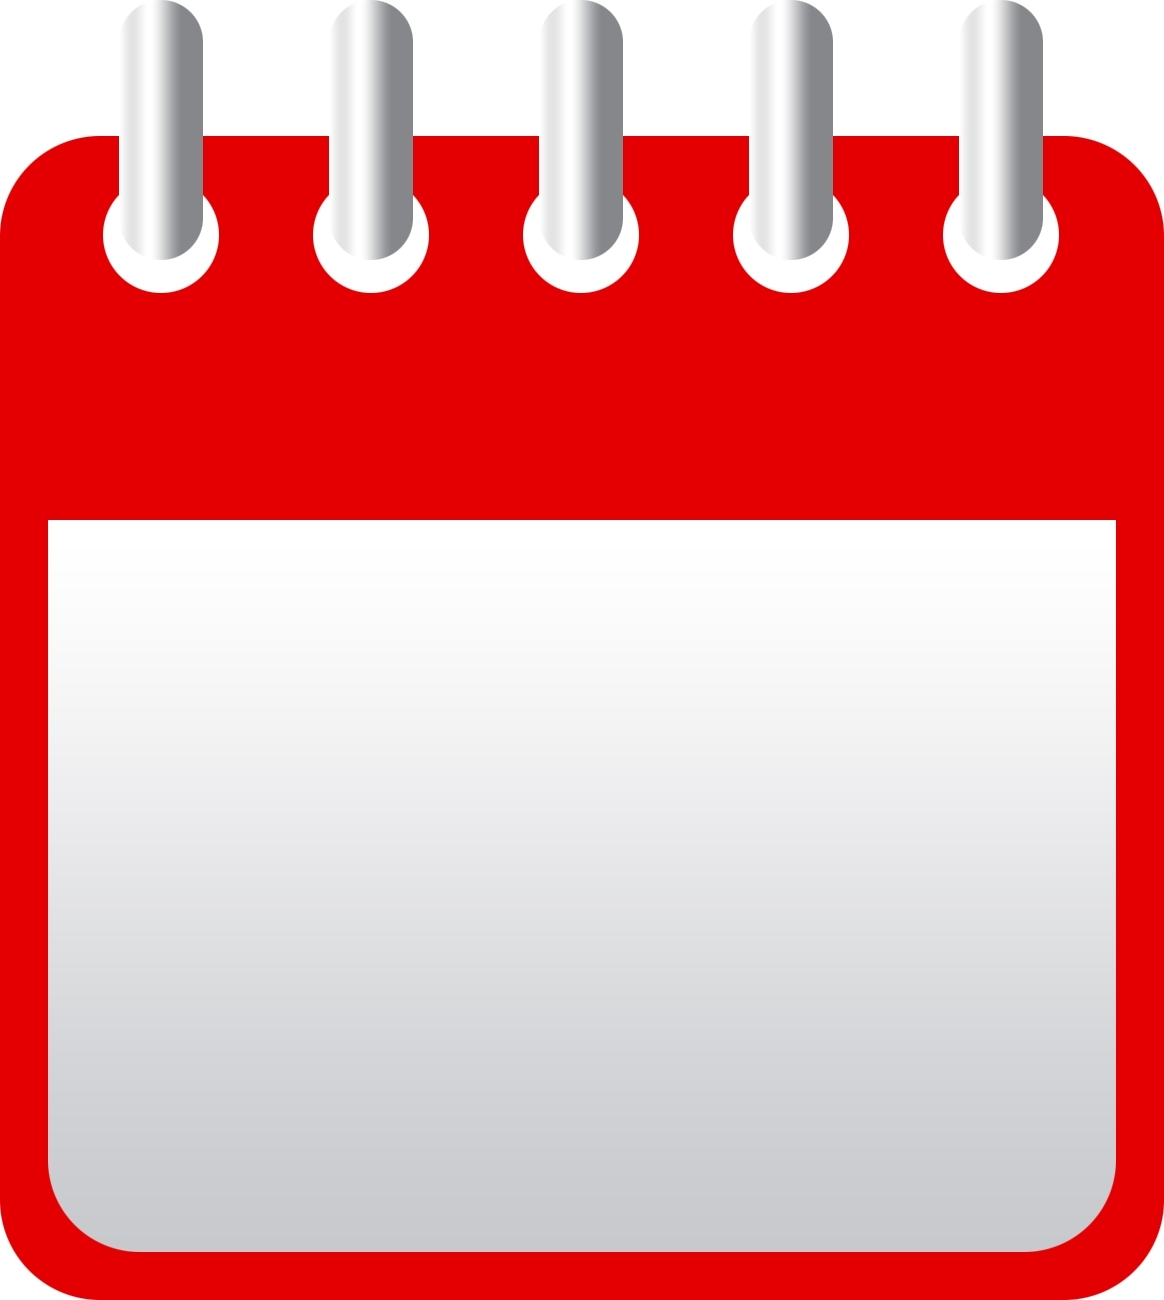 Blank Calendar Icon Png #41273 - Free Icons Library regarding Free Images Generic Calendar Icon